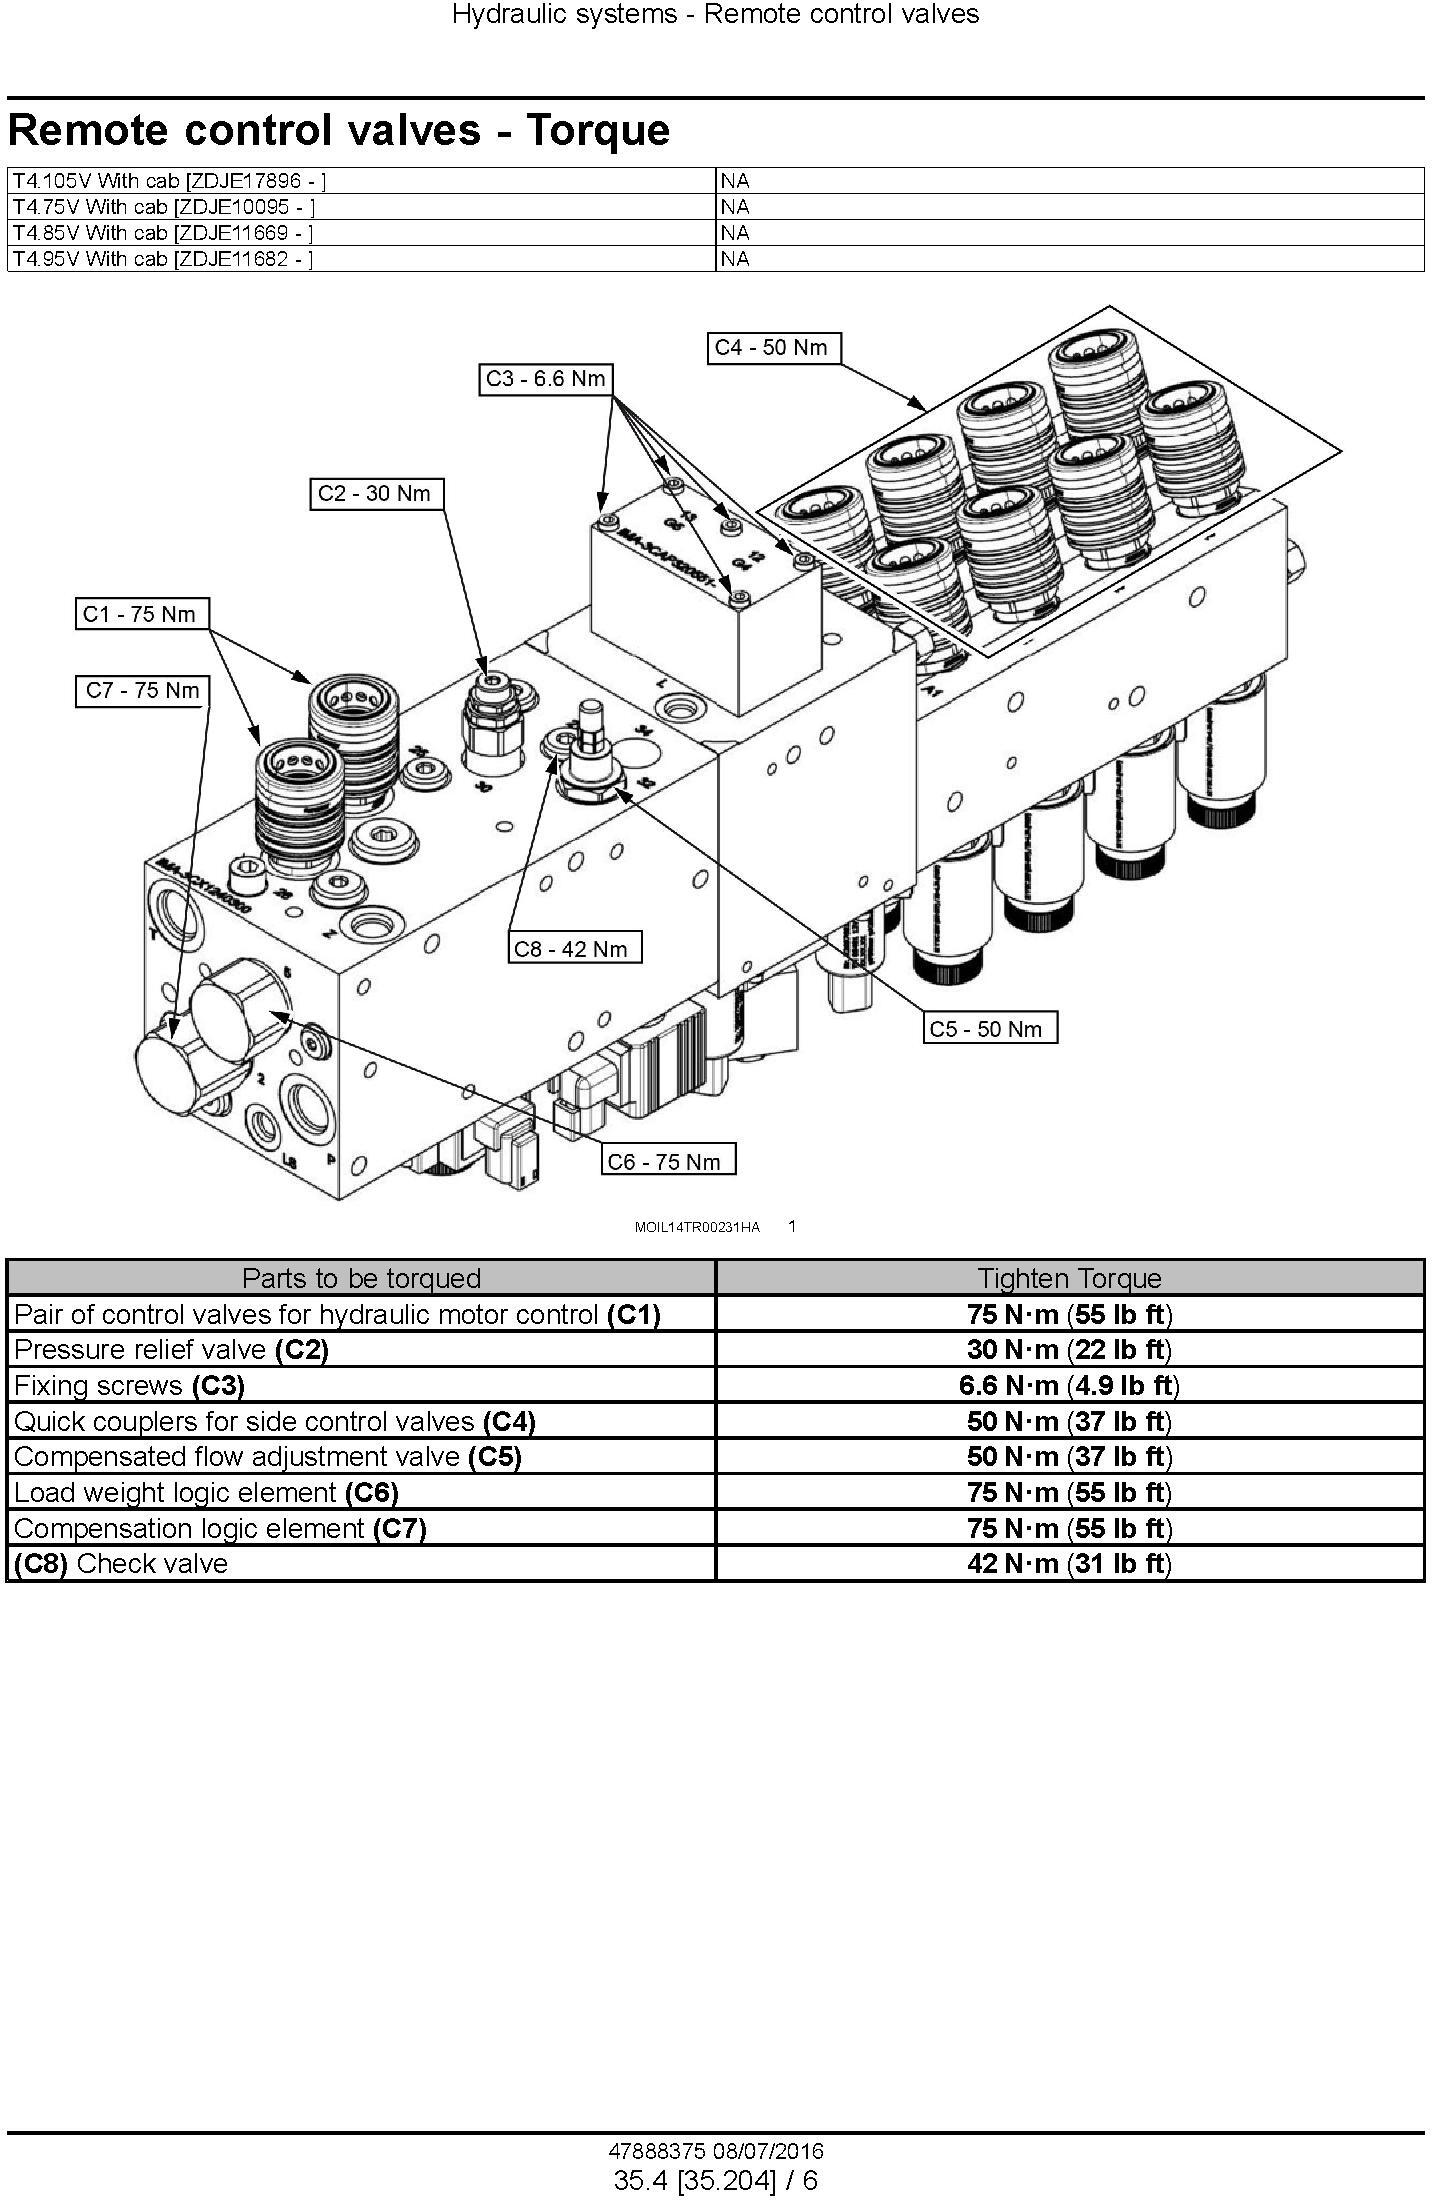 New Holland T4.75V, T4.85V, T4.95V, T4.105V Tier 3 Tractor Complete Service Manual (North America) - 3